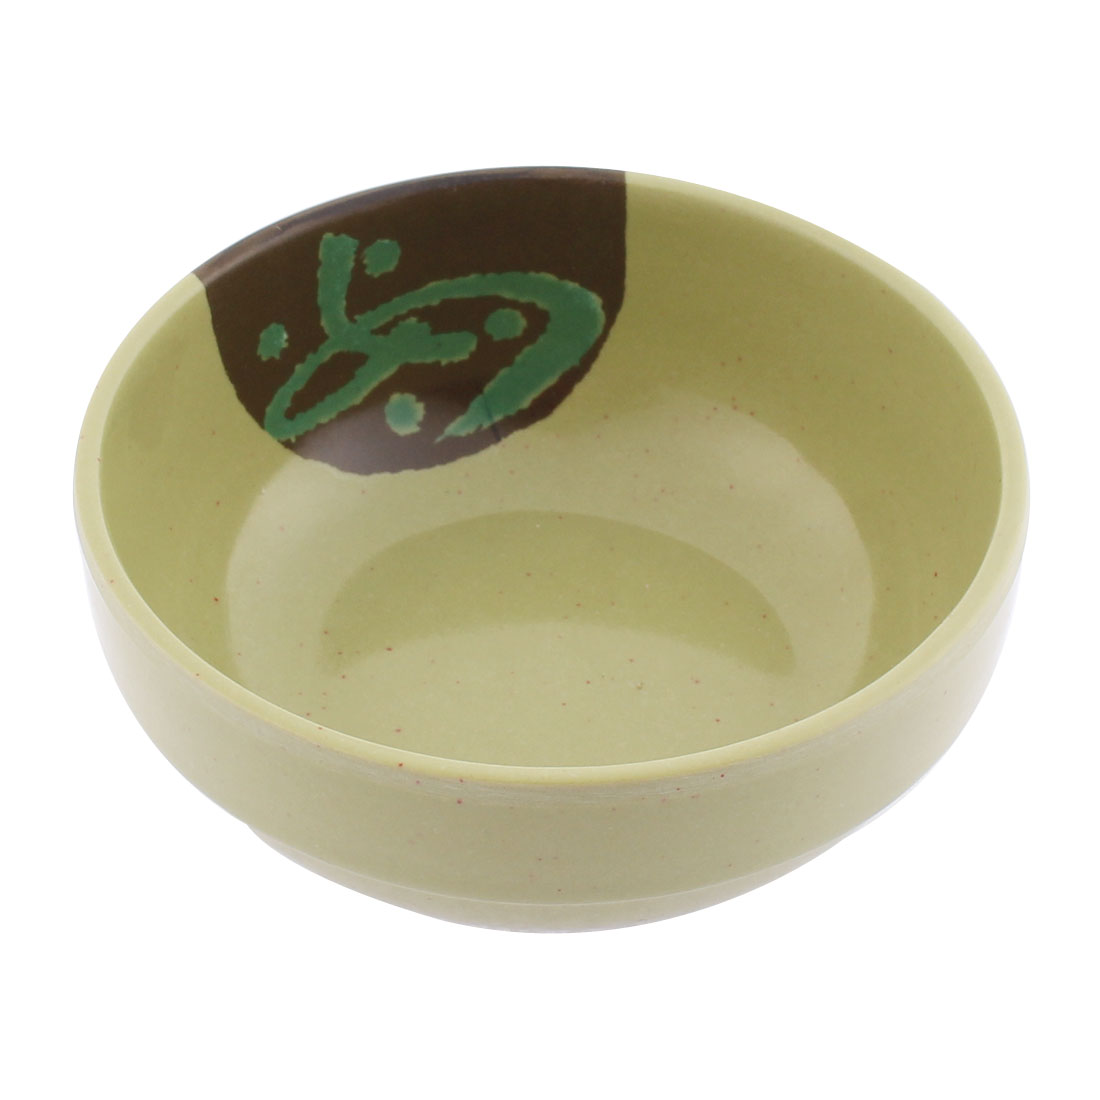 Plastic Character Pattern Soup Porridge Rice Bowl Olive Green 11cm Dia